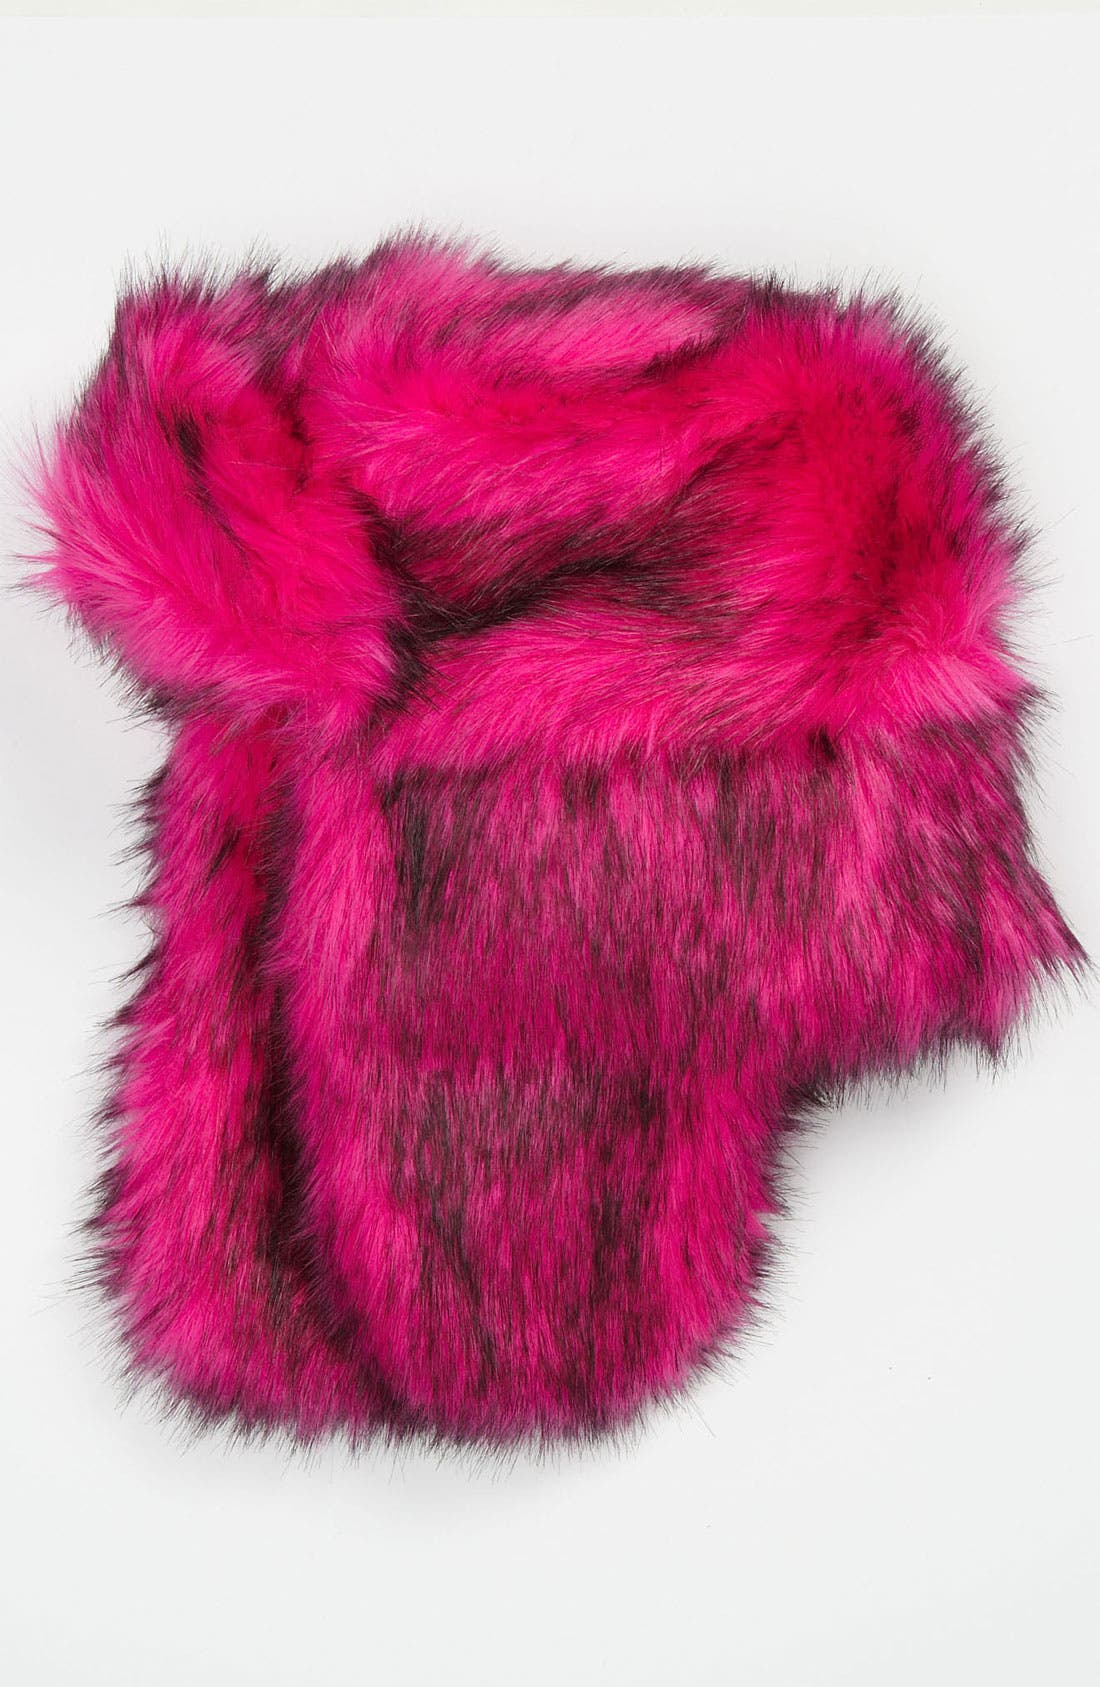 Alternate Image 1 Selected - Juicy Couture Faux Fur Trapper Hat (Girls)